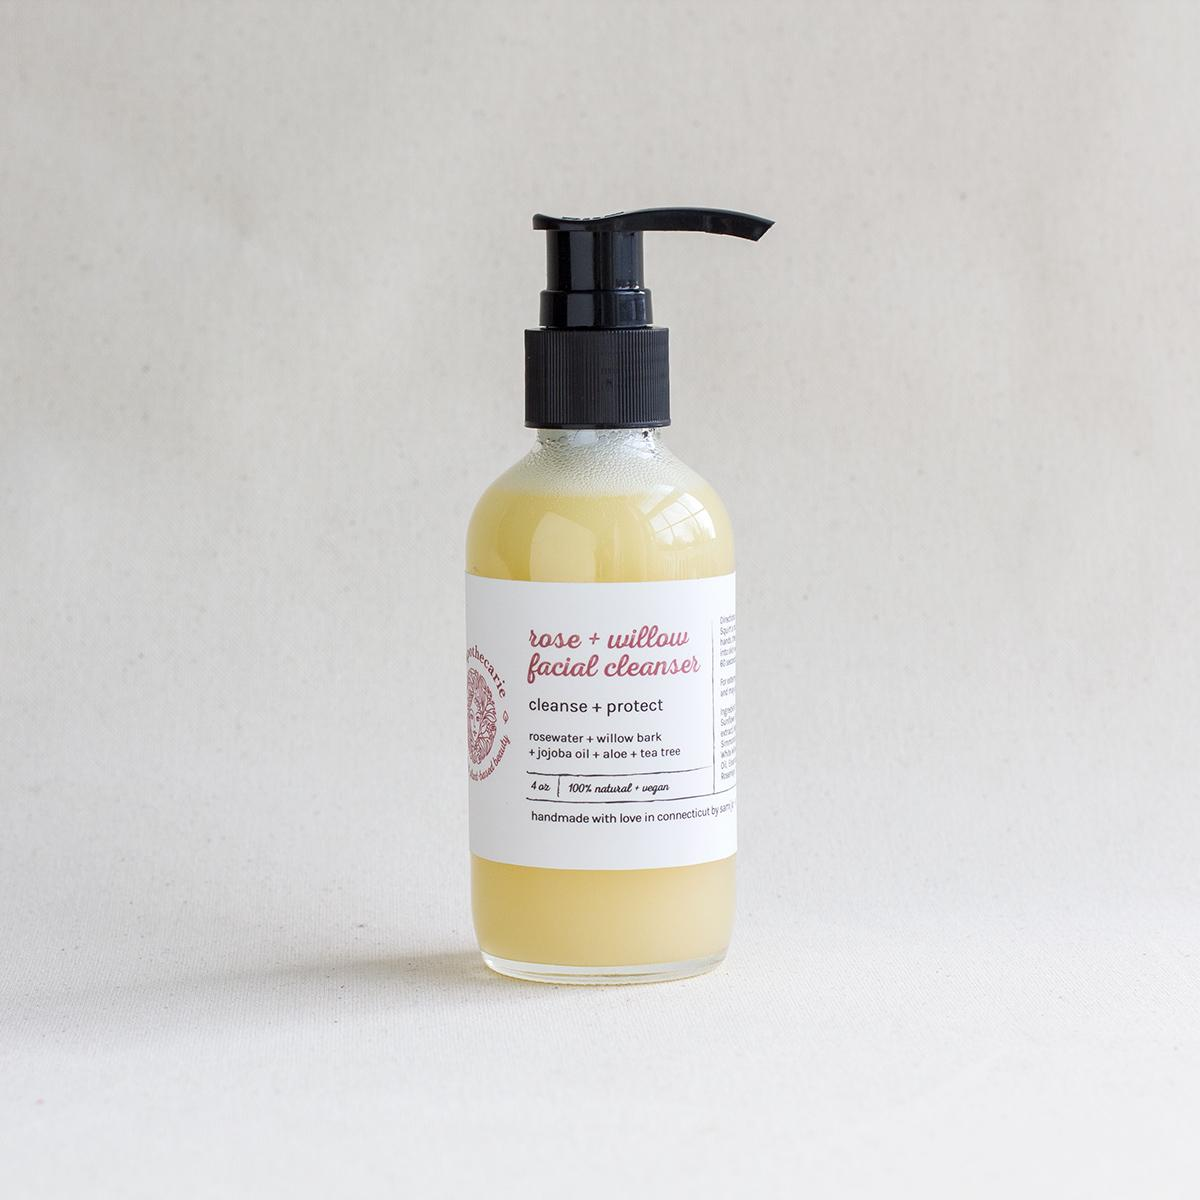 Rose + Willow Facial Cleanser